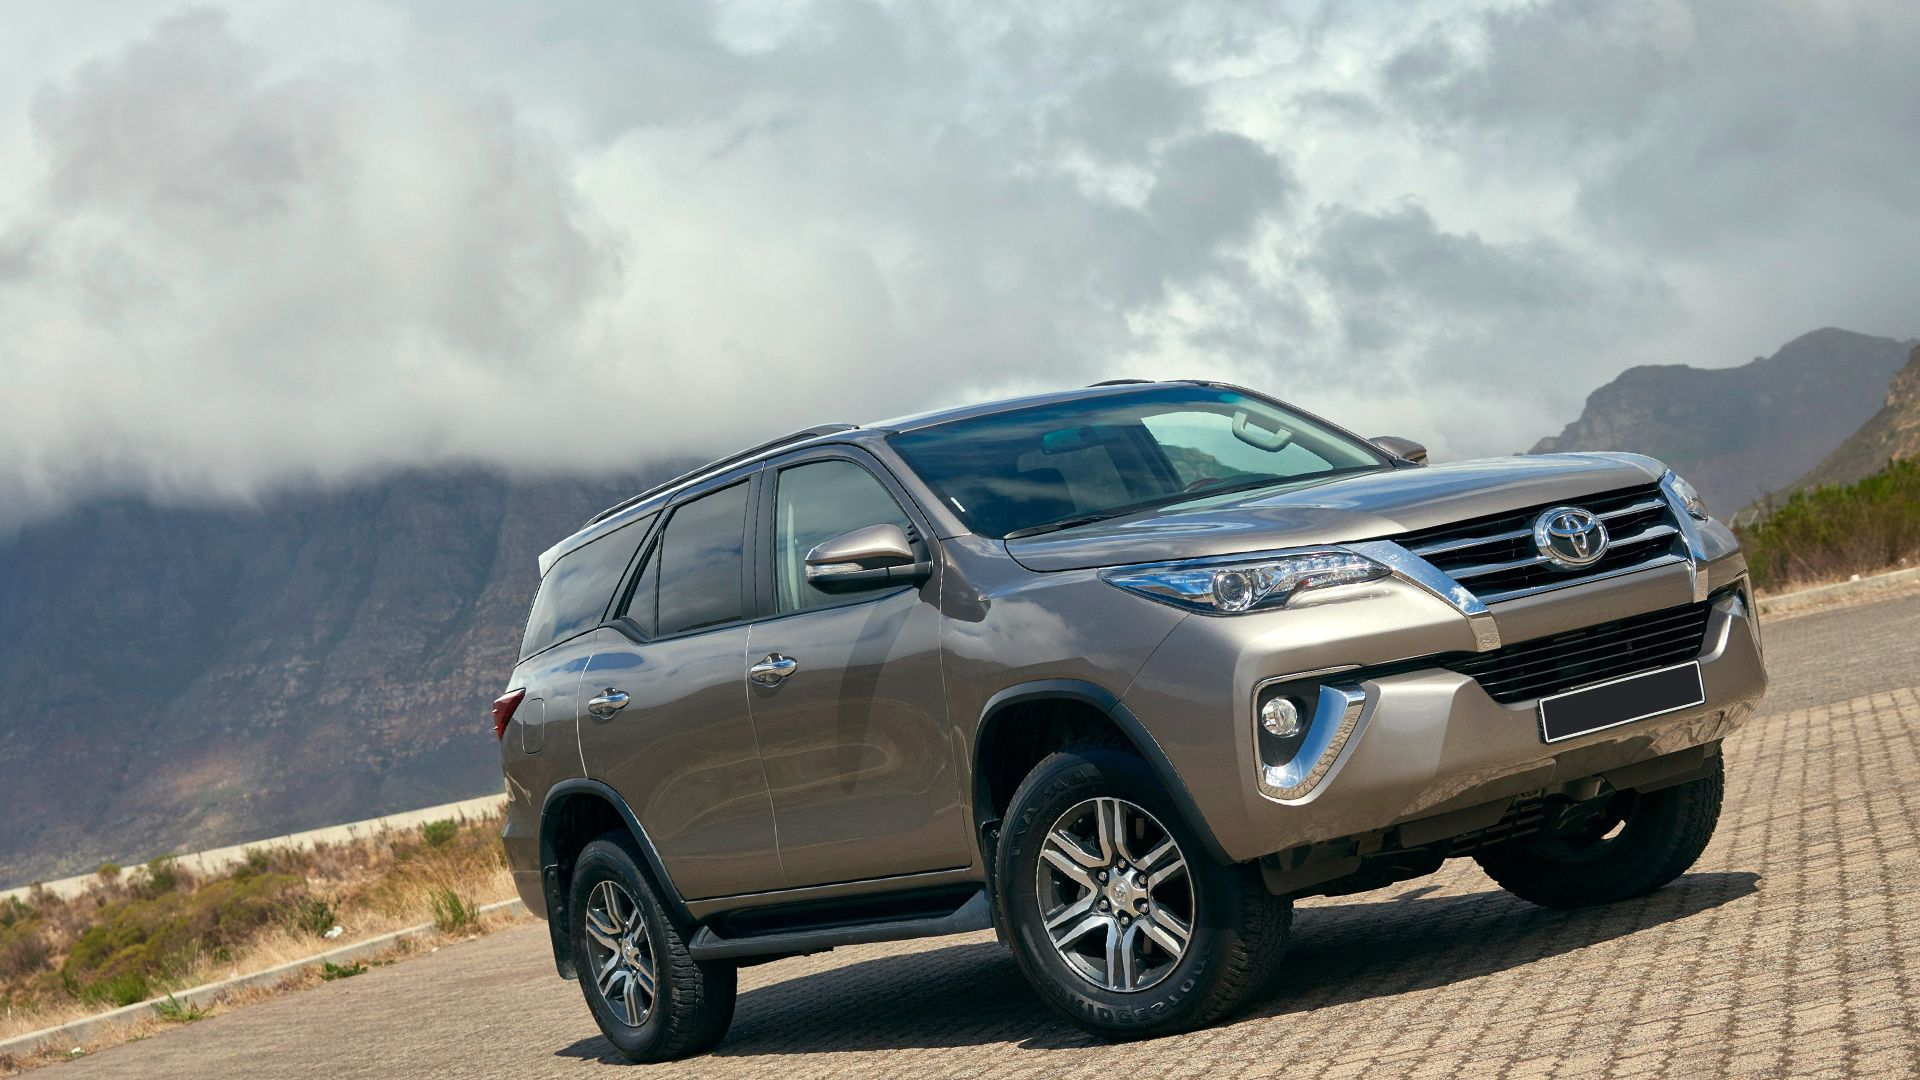 New 2019 Toyota Fortuner First Pictures